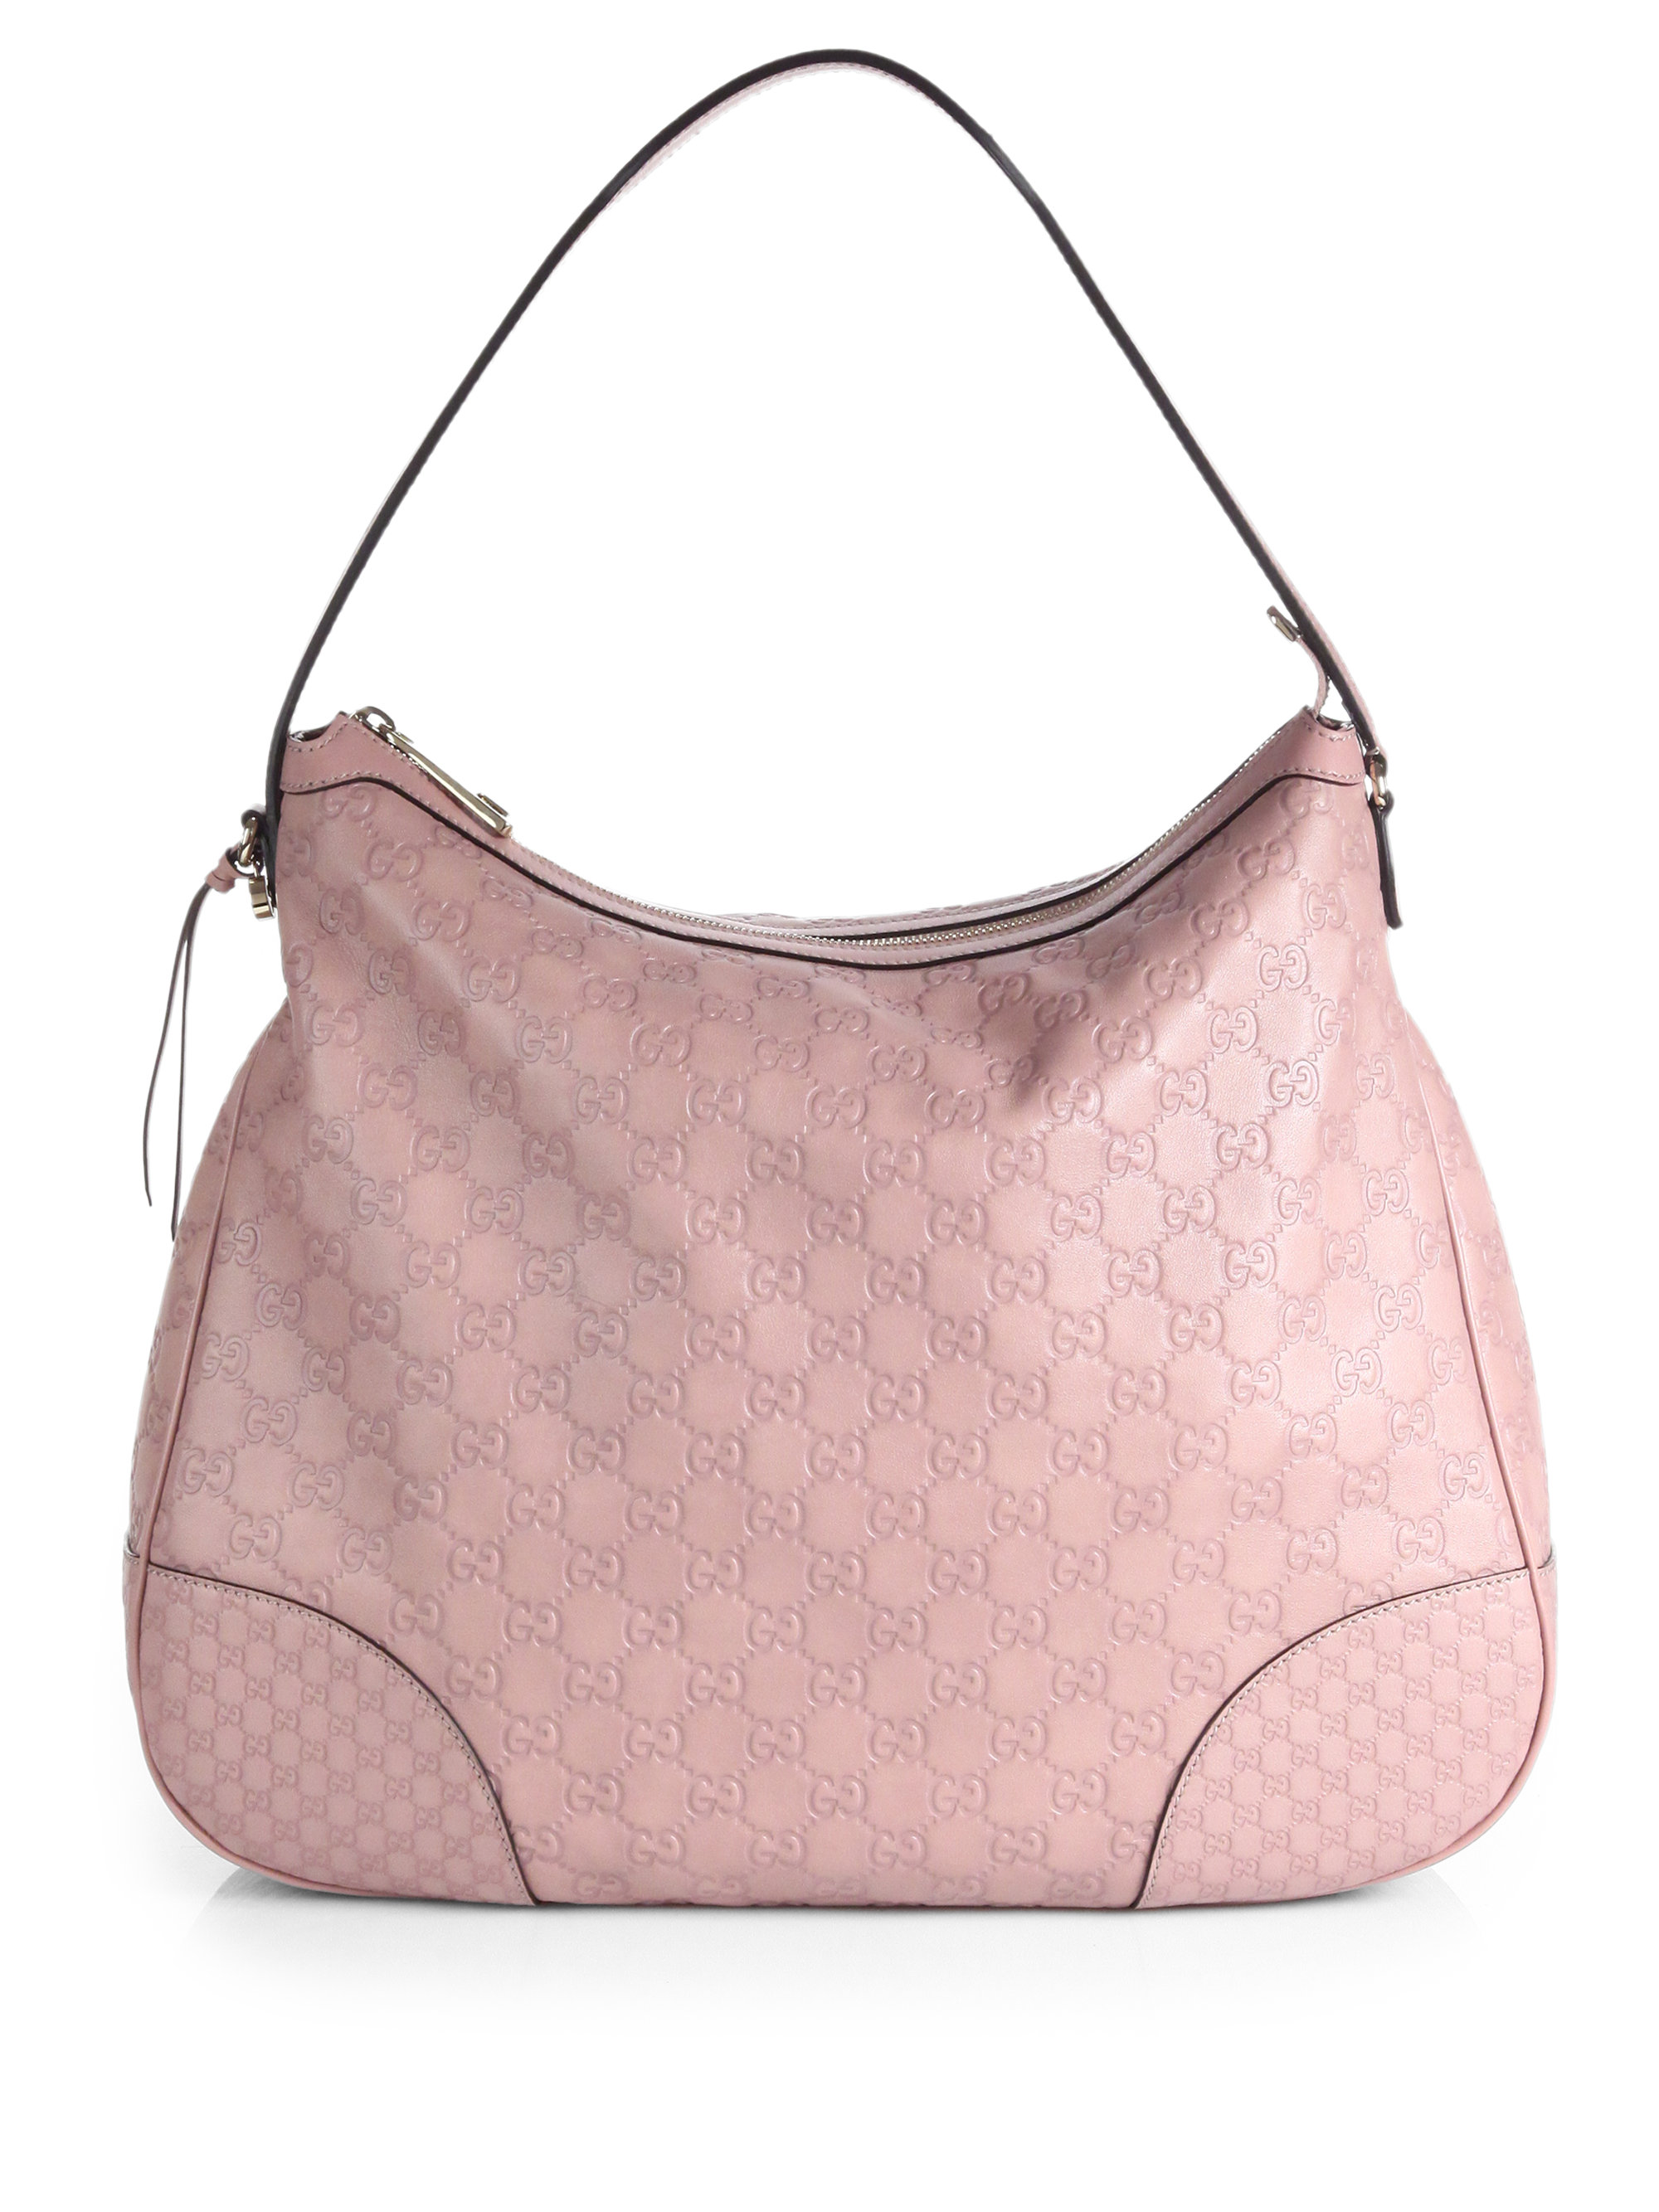 Gucci Bree Ssima Leather Hobo Bag in Pink | Lyst